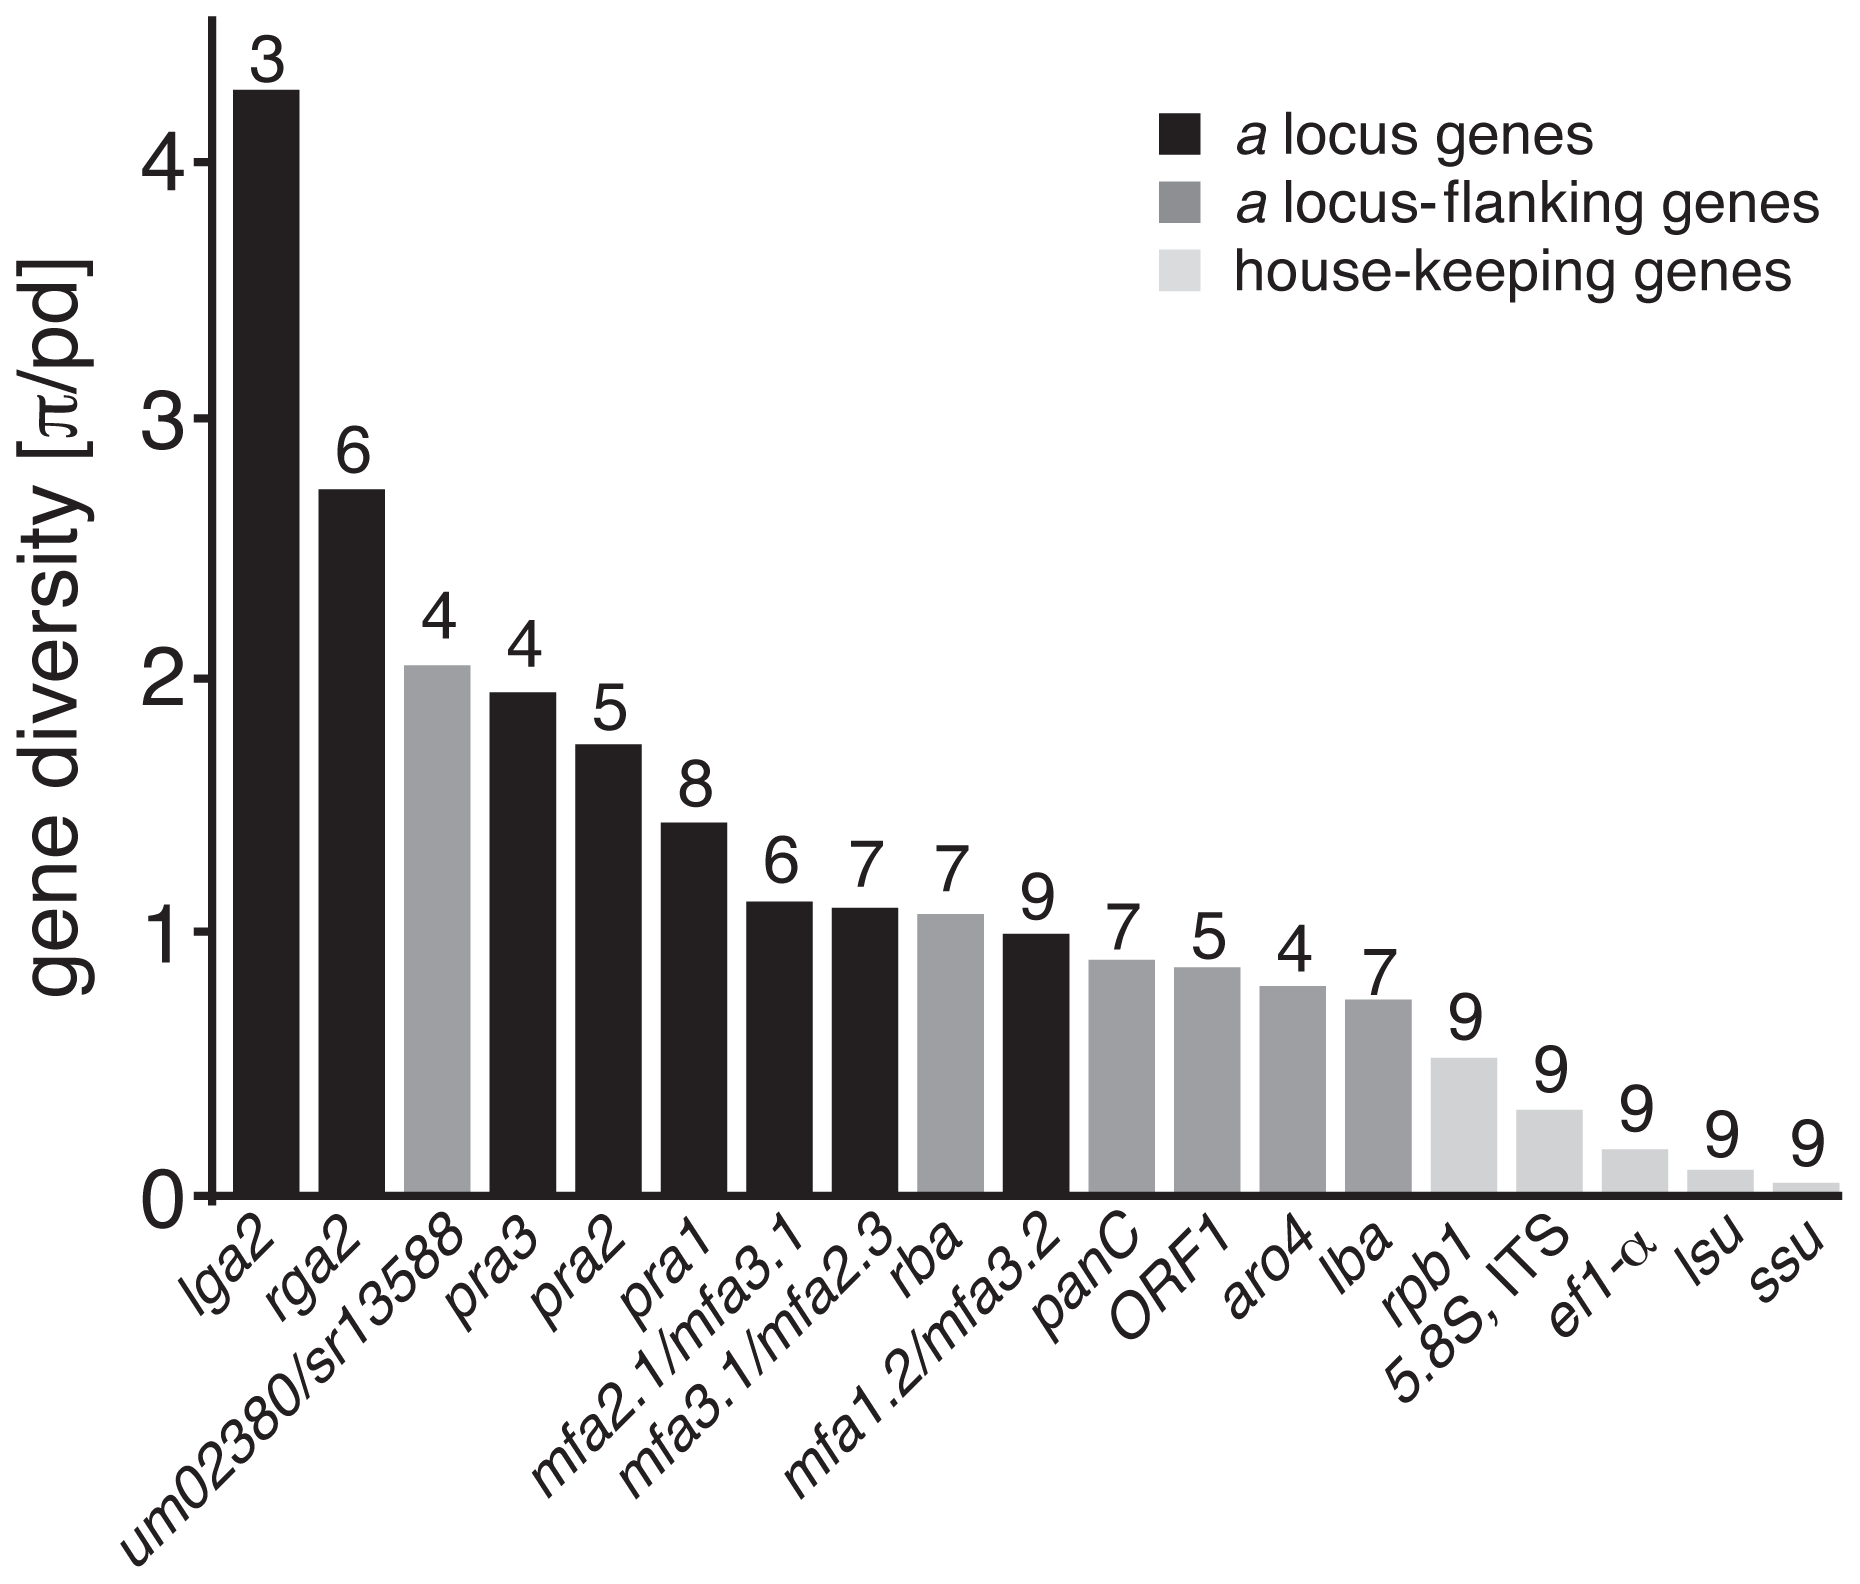 Nucleotide diversity of PR loci-associated and house-keeping genes.